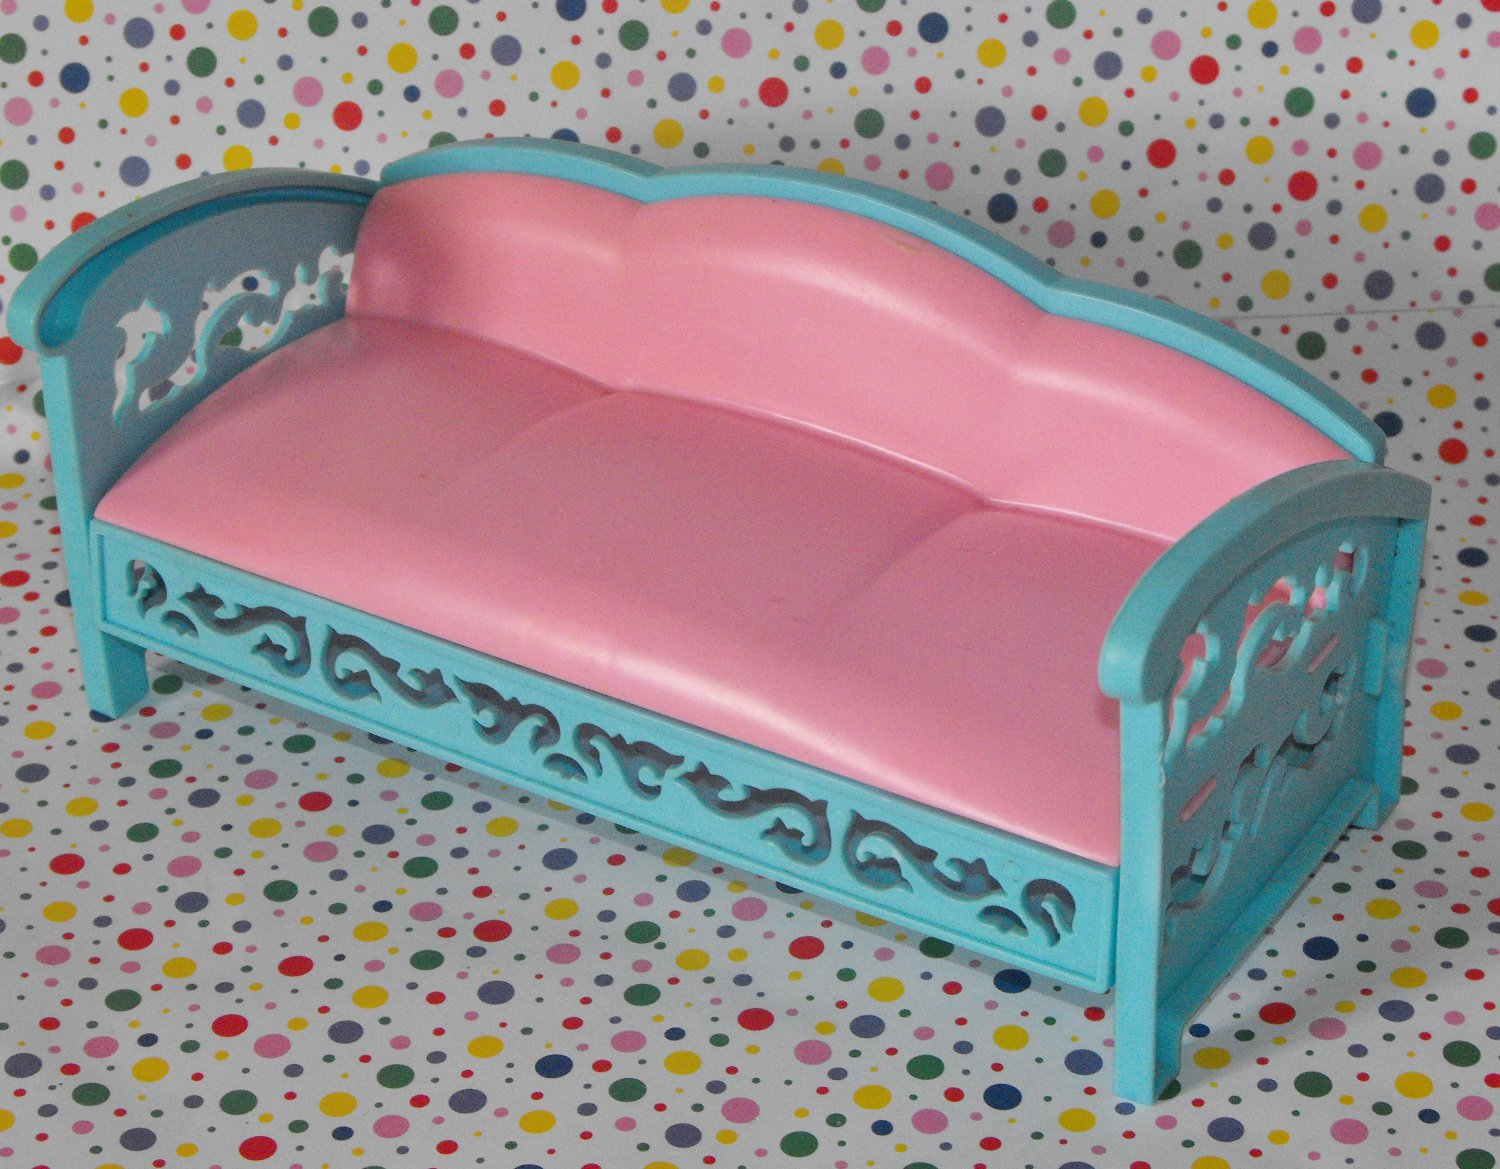 *SOLD~Awaiting Feedback~Vintage Barbie Patio Couch